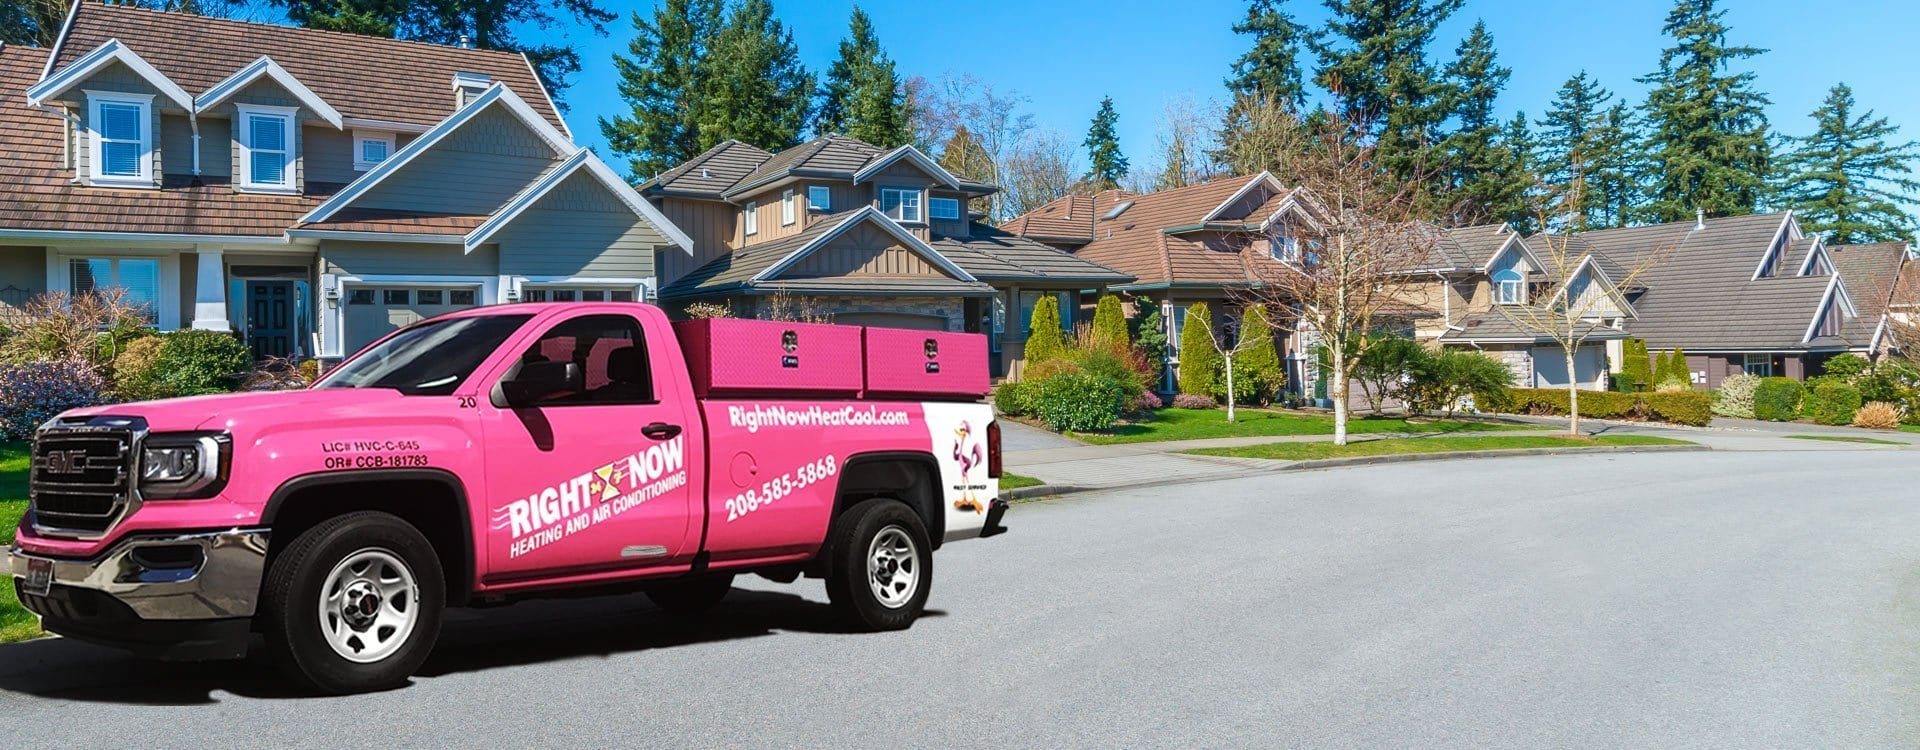 Right Now Heating & Air Conditioning service truck in your neighborhood